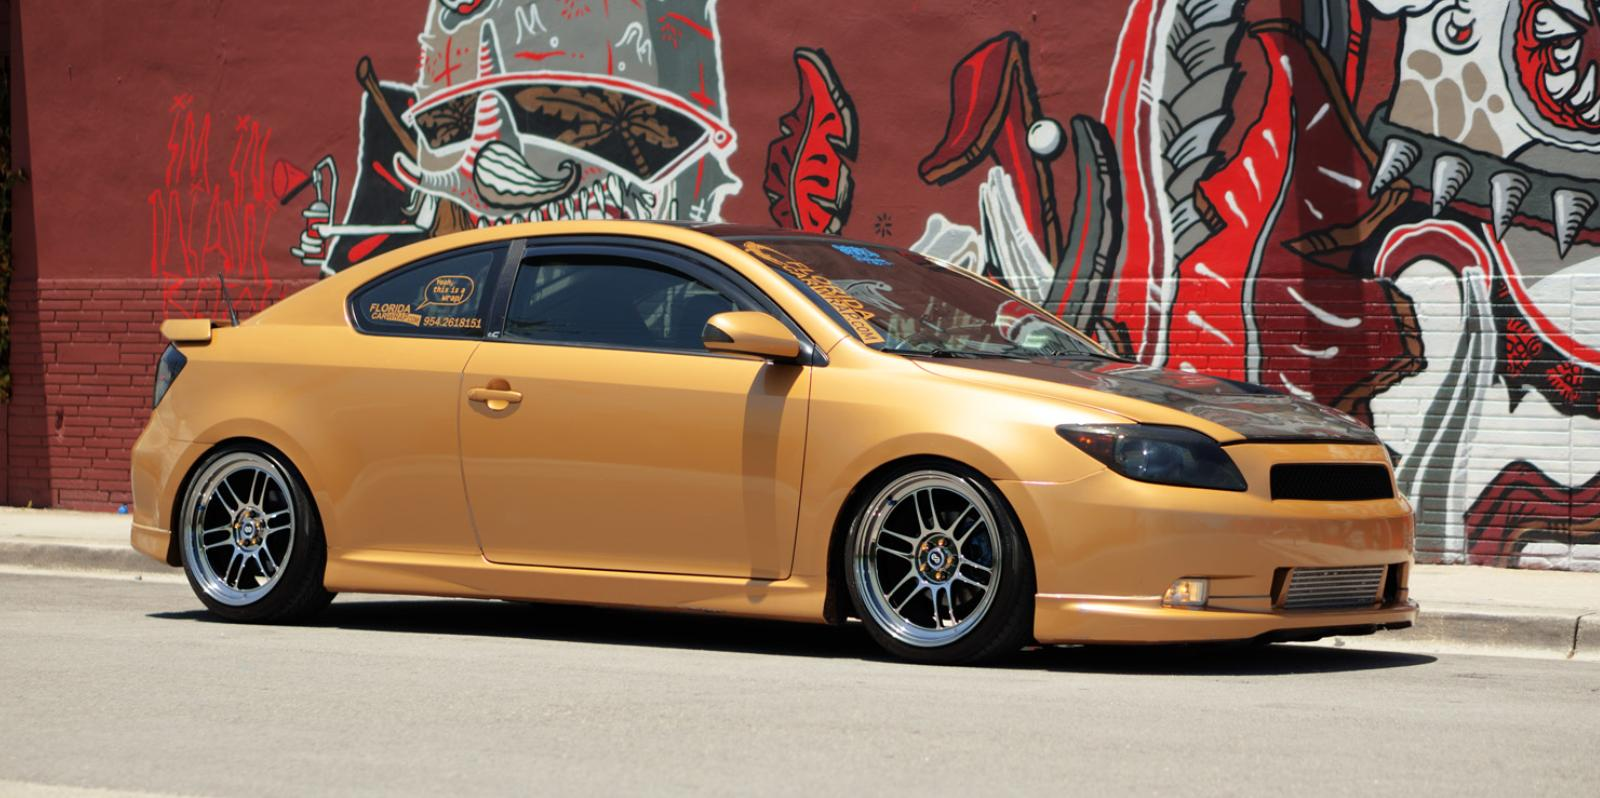 Gold vinyl wrap,Enkei RPF1s, F2 coilovers